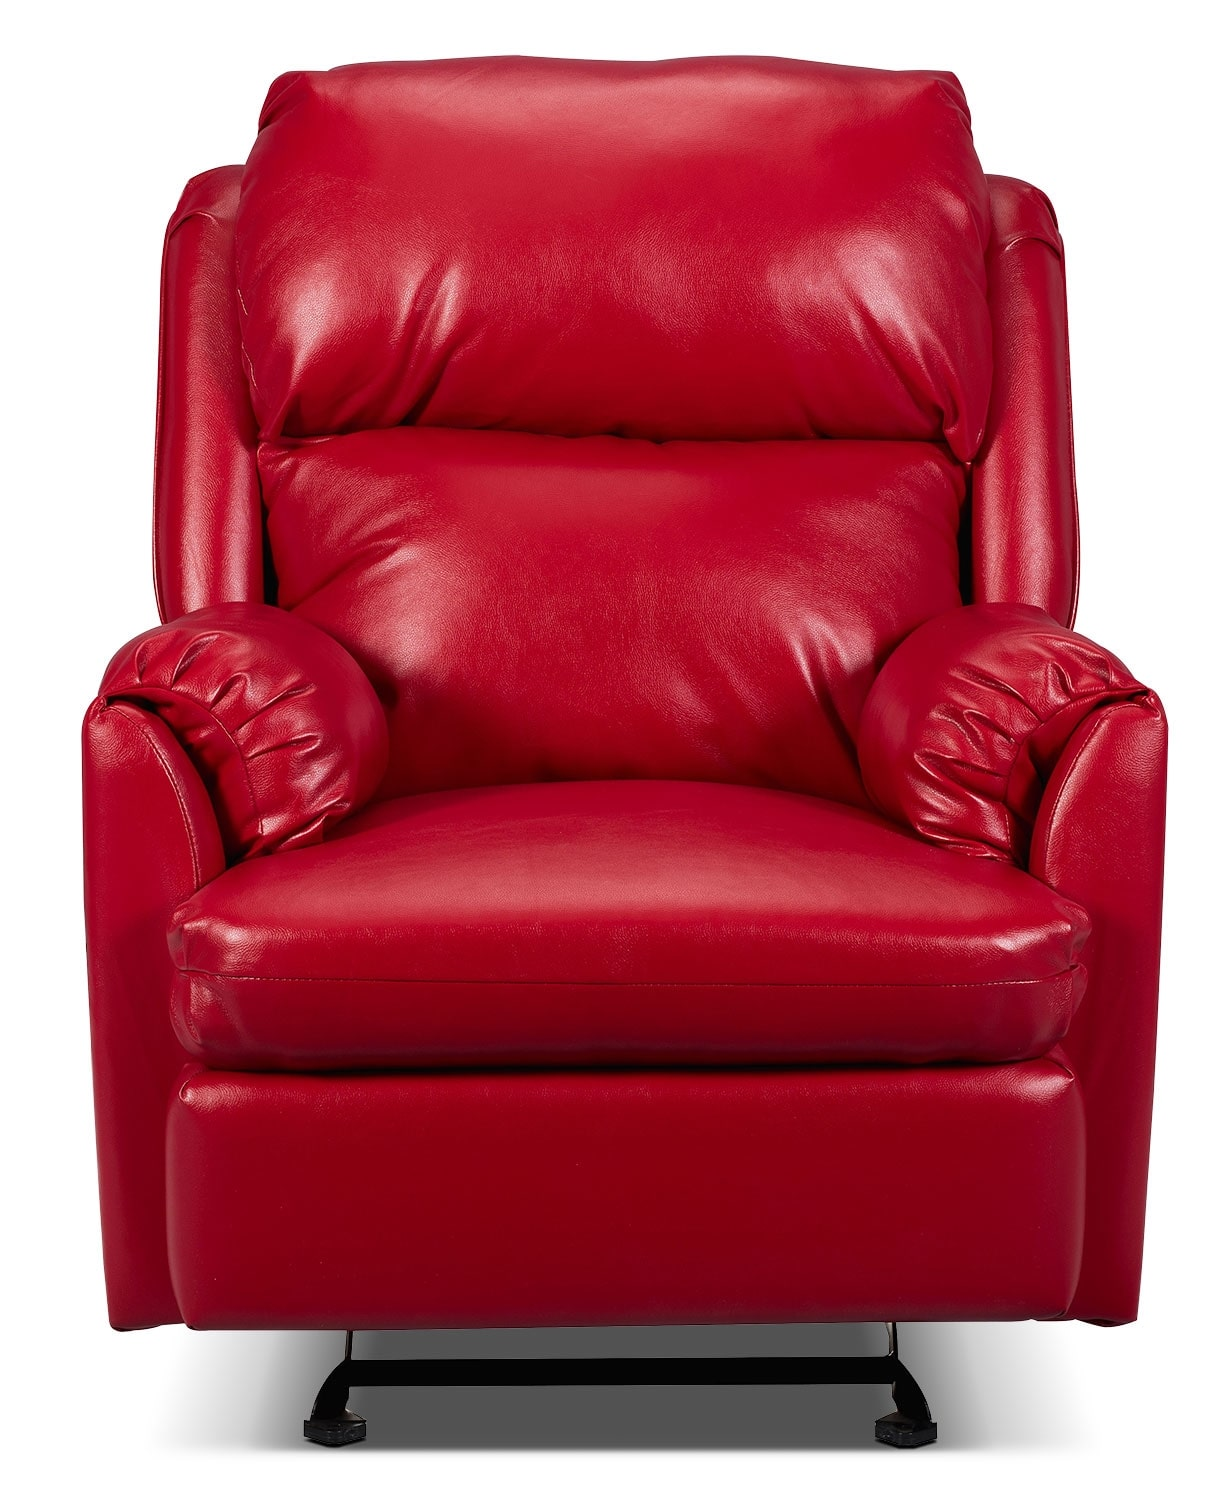 Living Room Furniture - Drogba Faux Leather Power Reclining Chair - Red